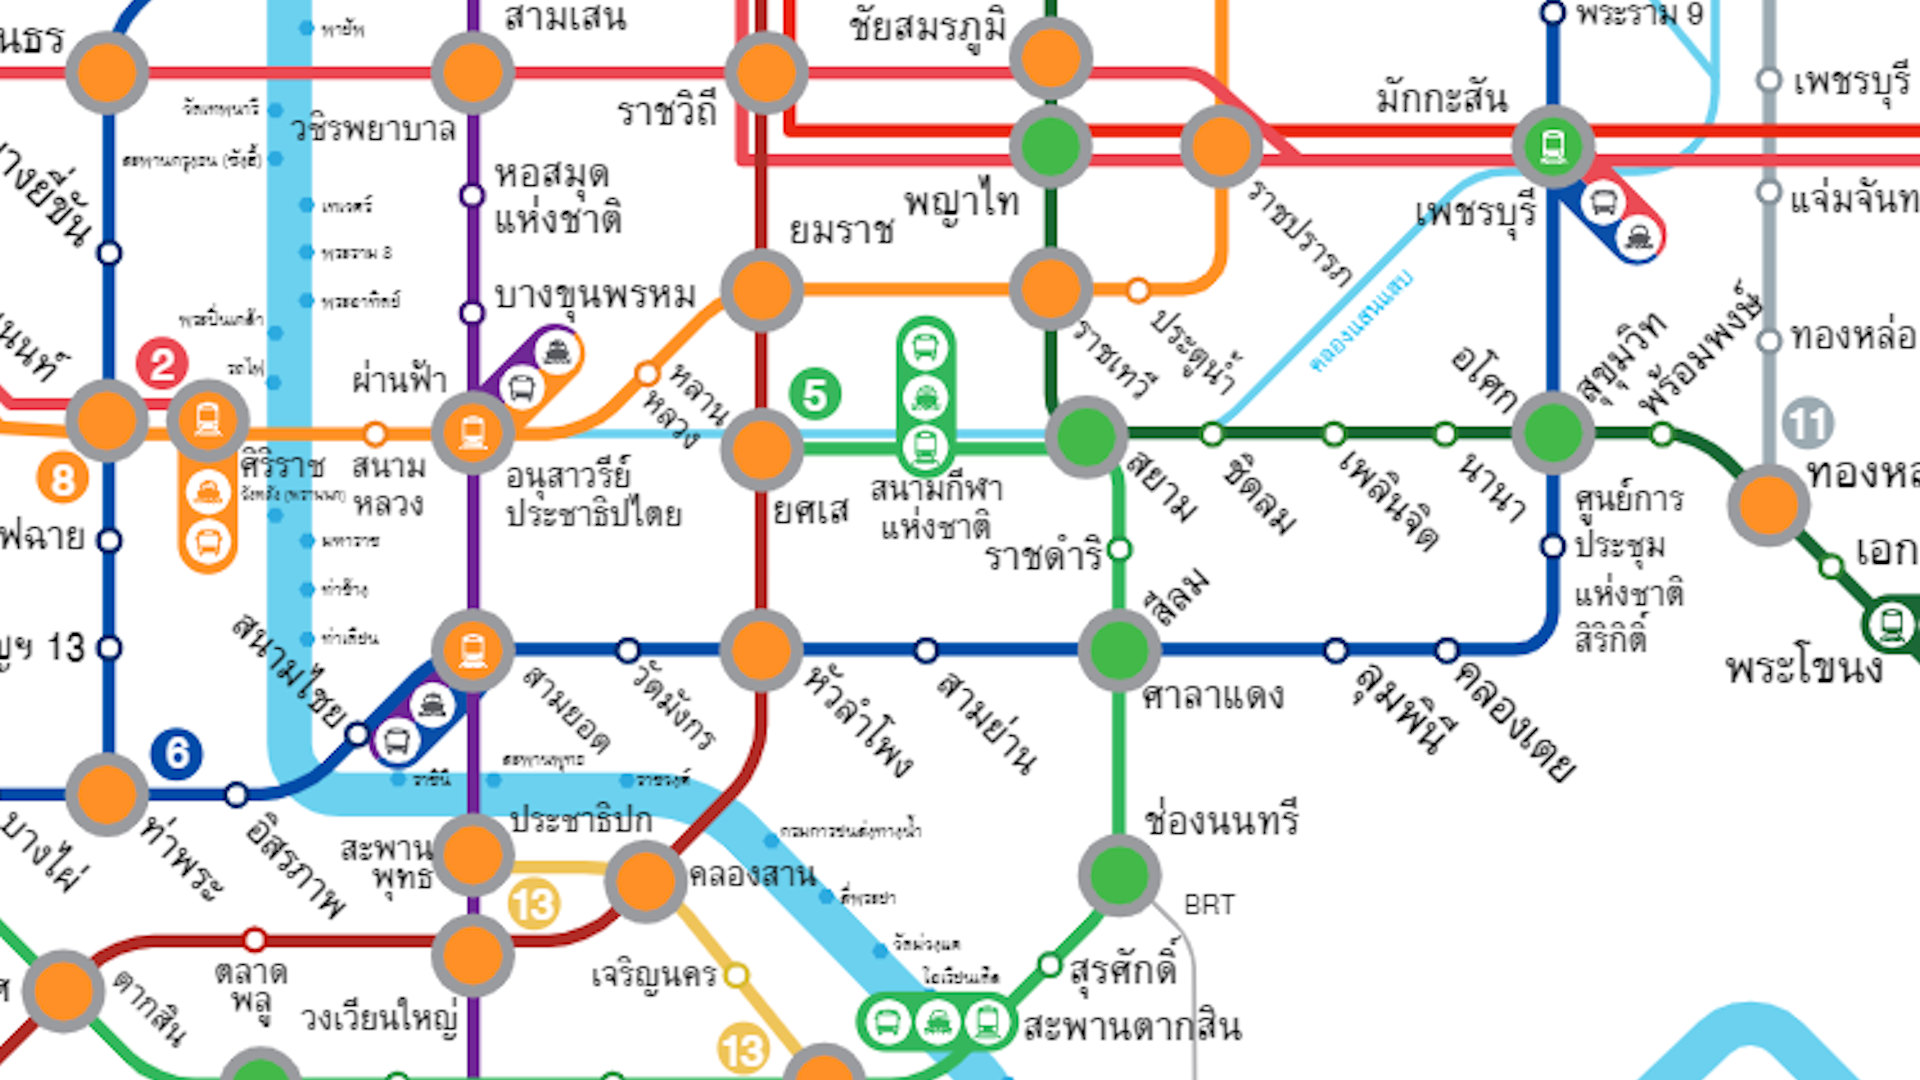 bangkok mrt blue line 2019 map